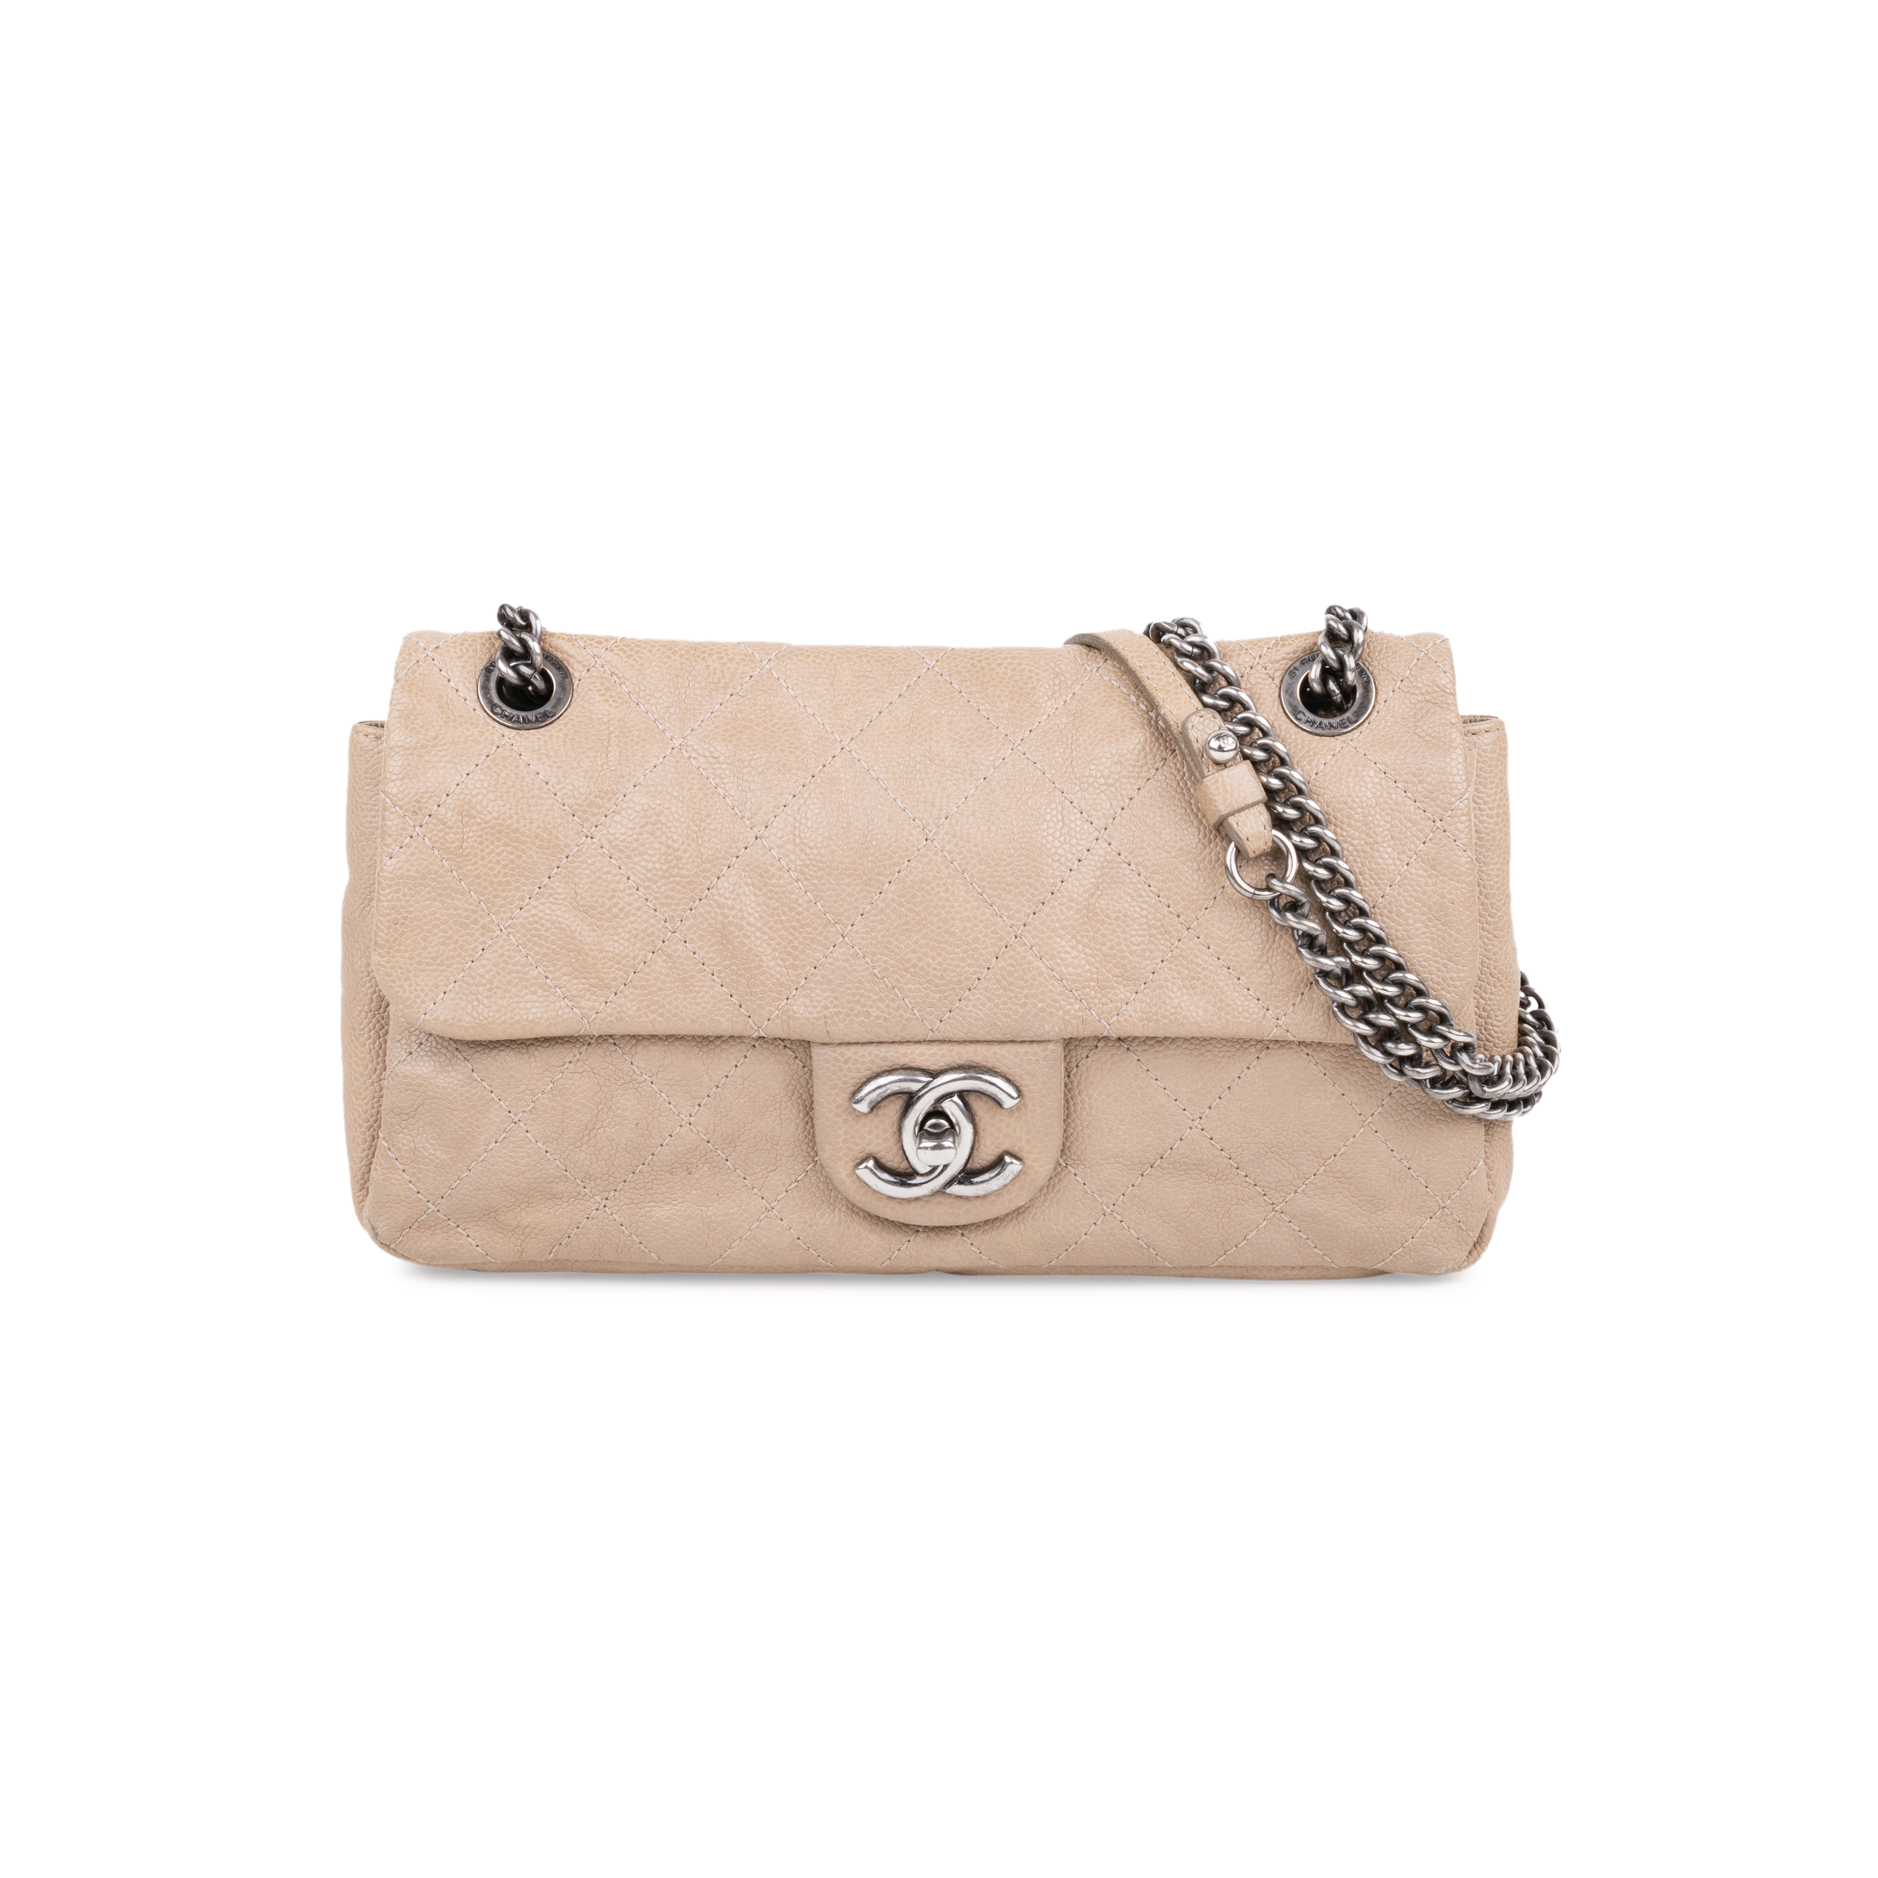 184c99b6fb6b8b Authentic Second Hand Chanel Simply CC Caviar Flap Bag (PSS-597-00004) |  THE FIFTH COLLECTION